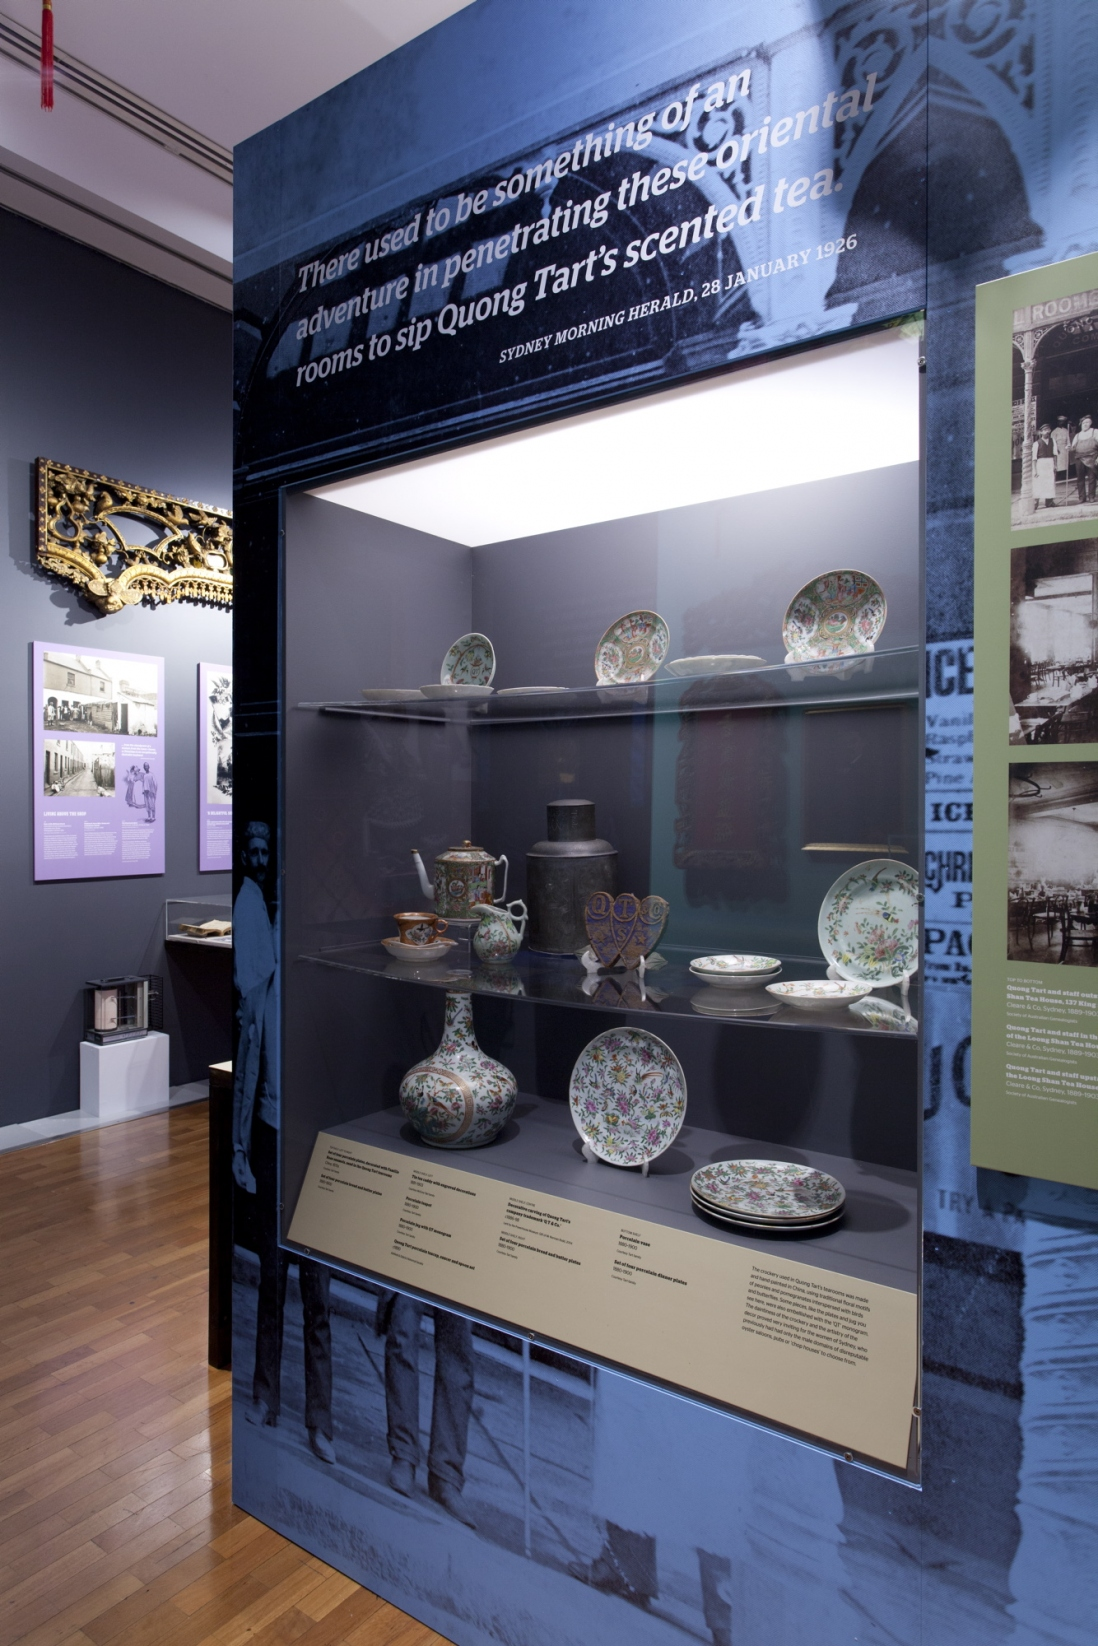 This is a photograph of a showcase featuring ceramics from the Quong Tart tearooms